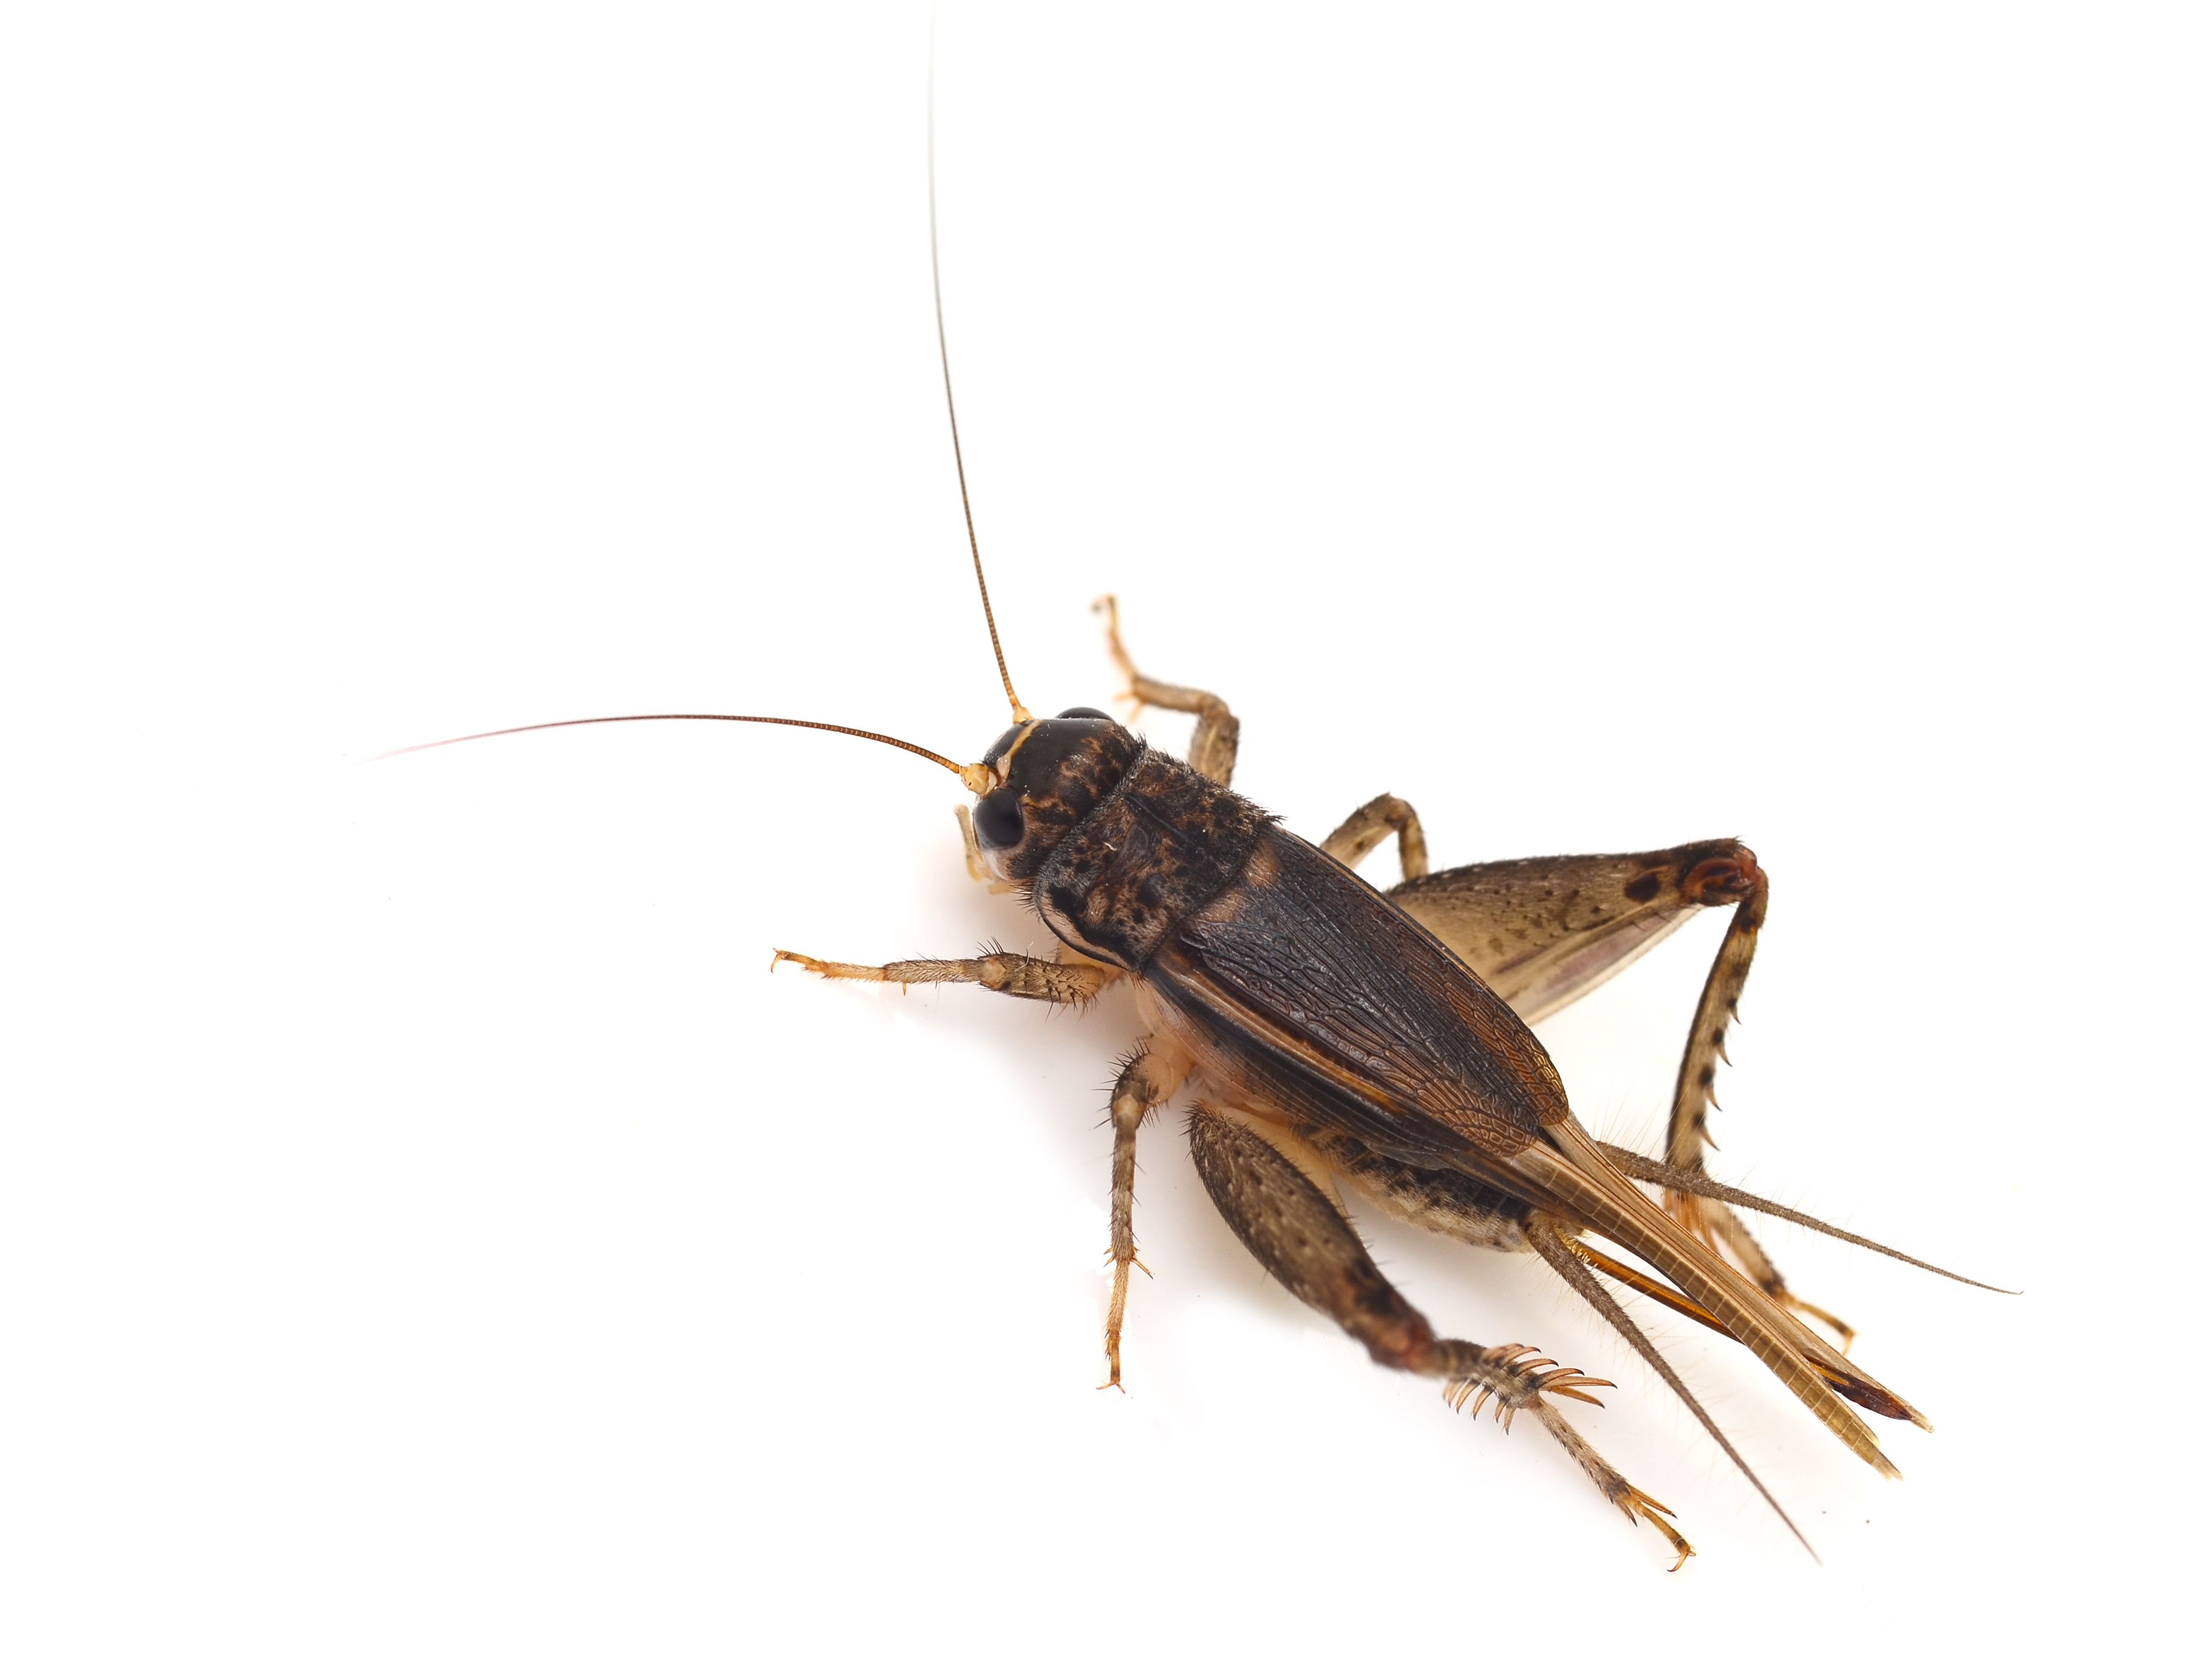 Get Rid of Crickets Pest Control Long Island